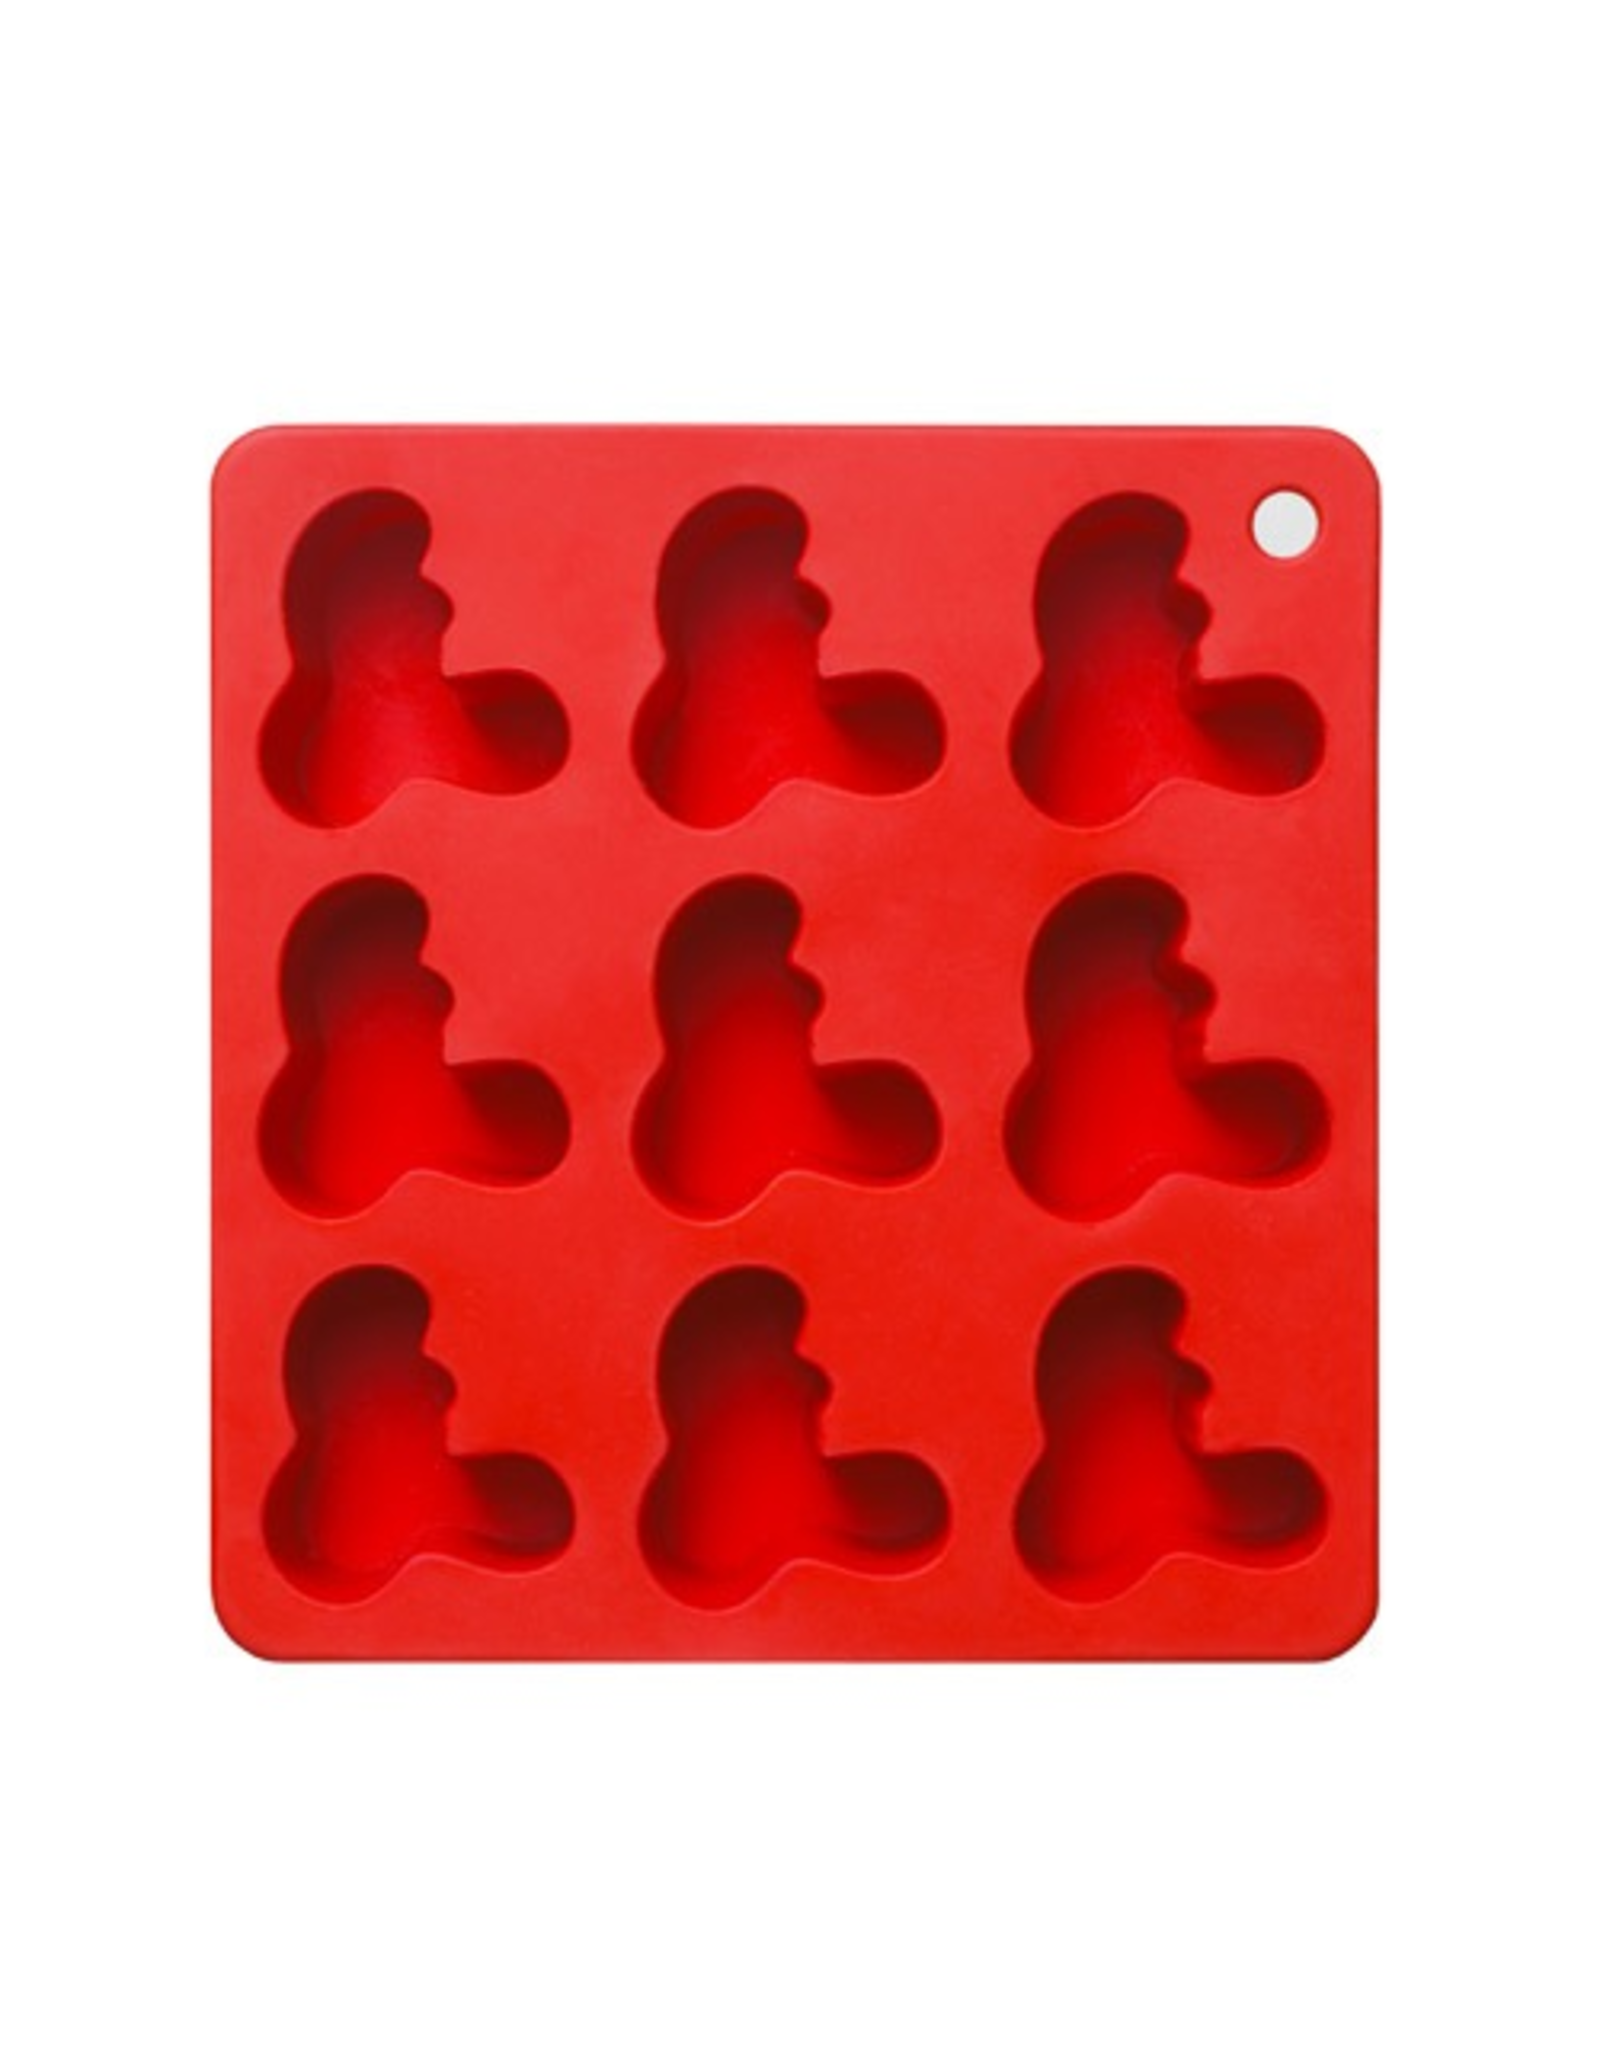 IITTALA AALTO ICE-CUBE MOLD, RED, 162 MM